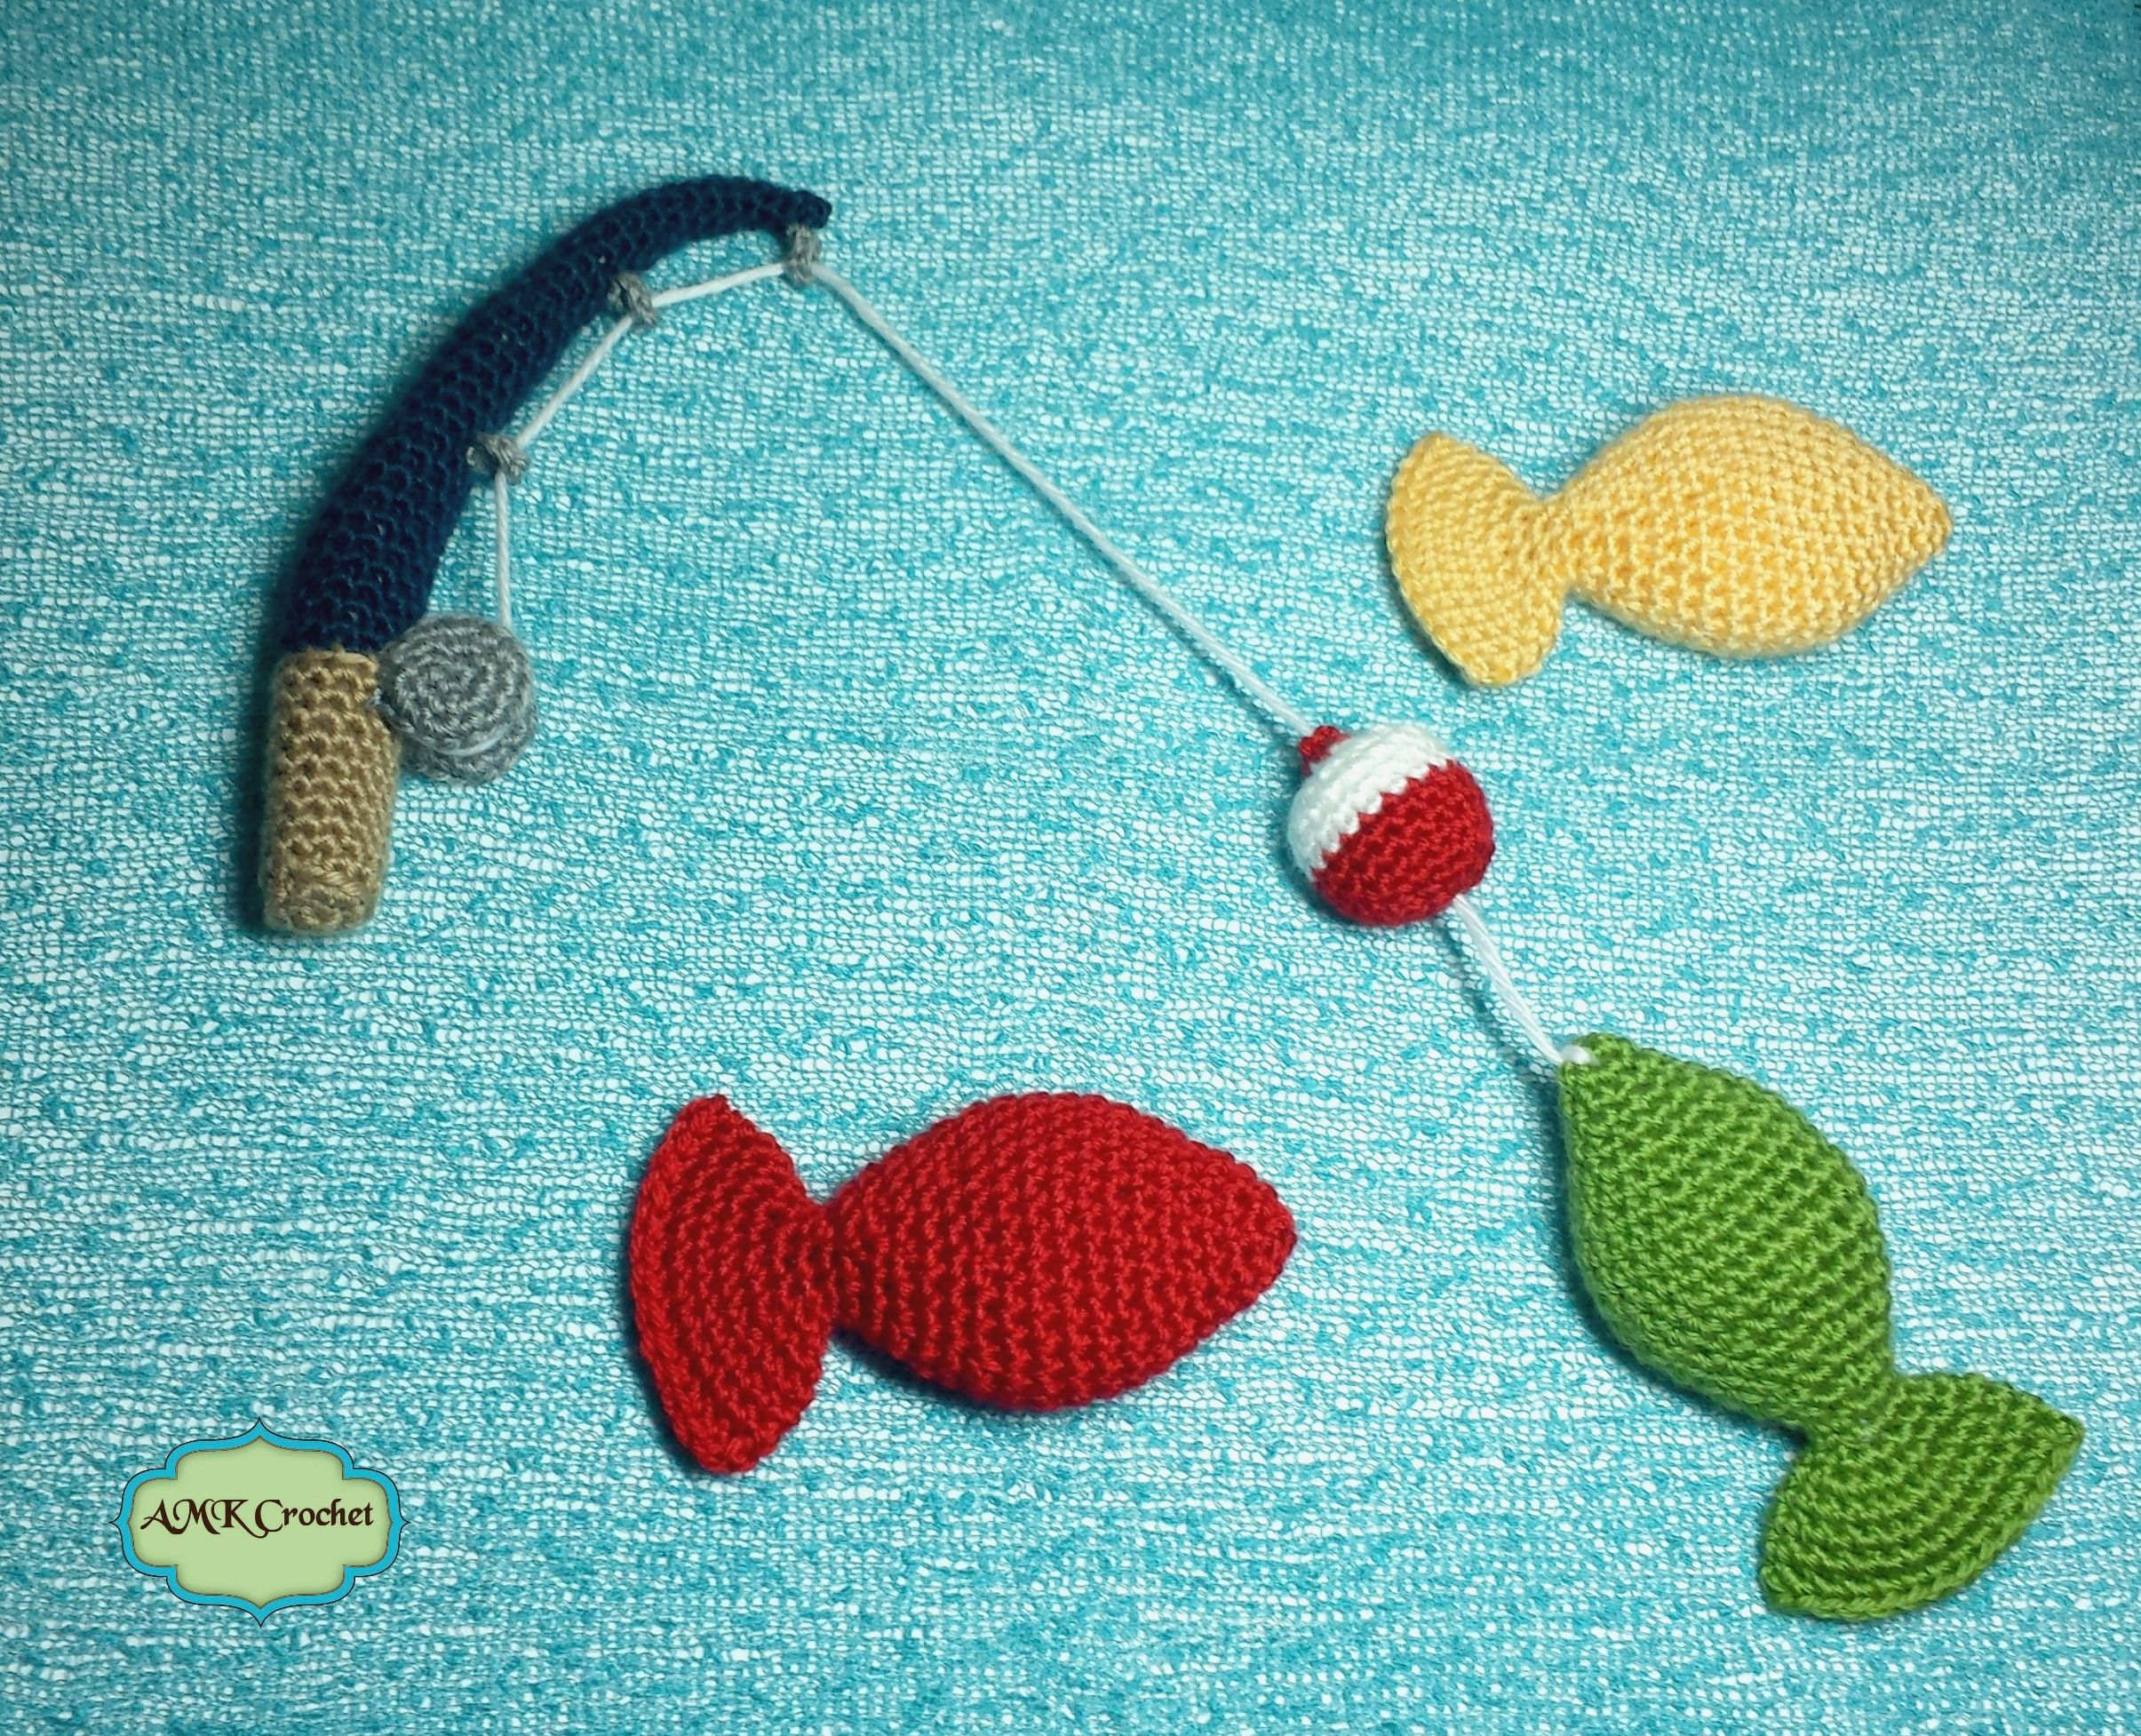 Fishing Pole Crochet Pattern with Fish Plush Toy for Photo Prop ...